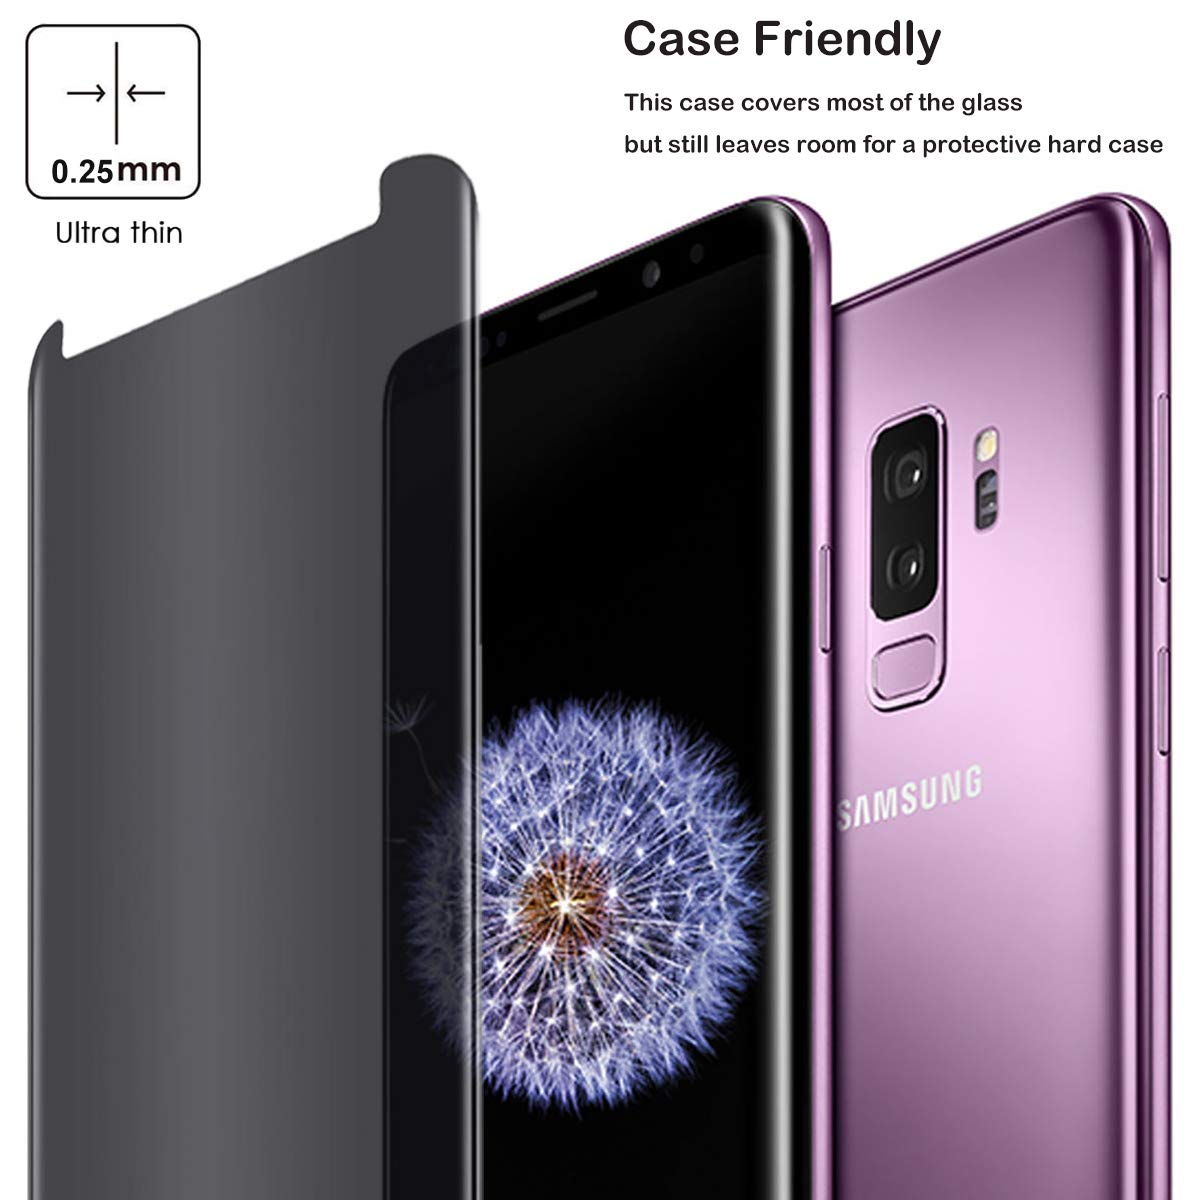 Compatible for Samsung Galaxy S9 Plus S9+ ((Not for S9) Tempered Glass Screen Protector Privacy Anti-Spy Case Friendly Film, Moresky 3D Curved Anti-Scratch Anti-Bubble Guard (2 pcs) by Moresky (Image #5)